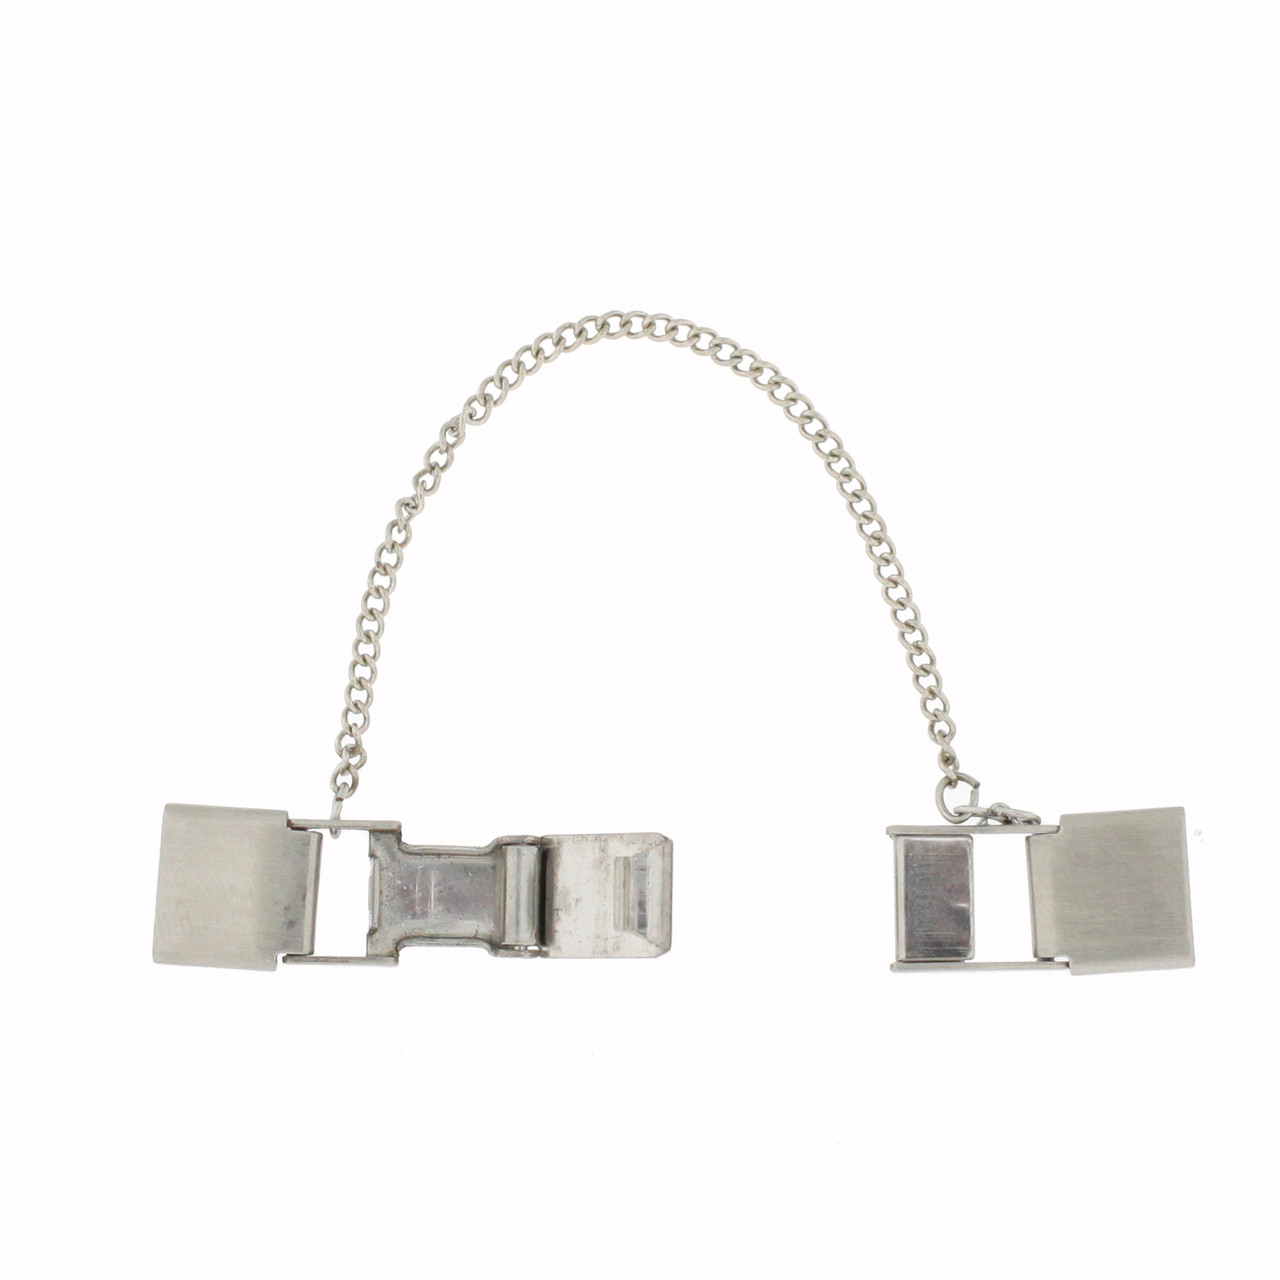 Ladies Clasp for Seiko Citizen bands with Safety Chain Vintage